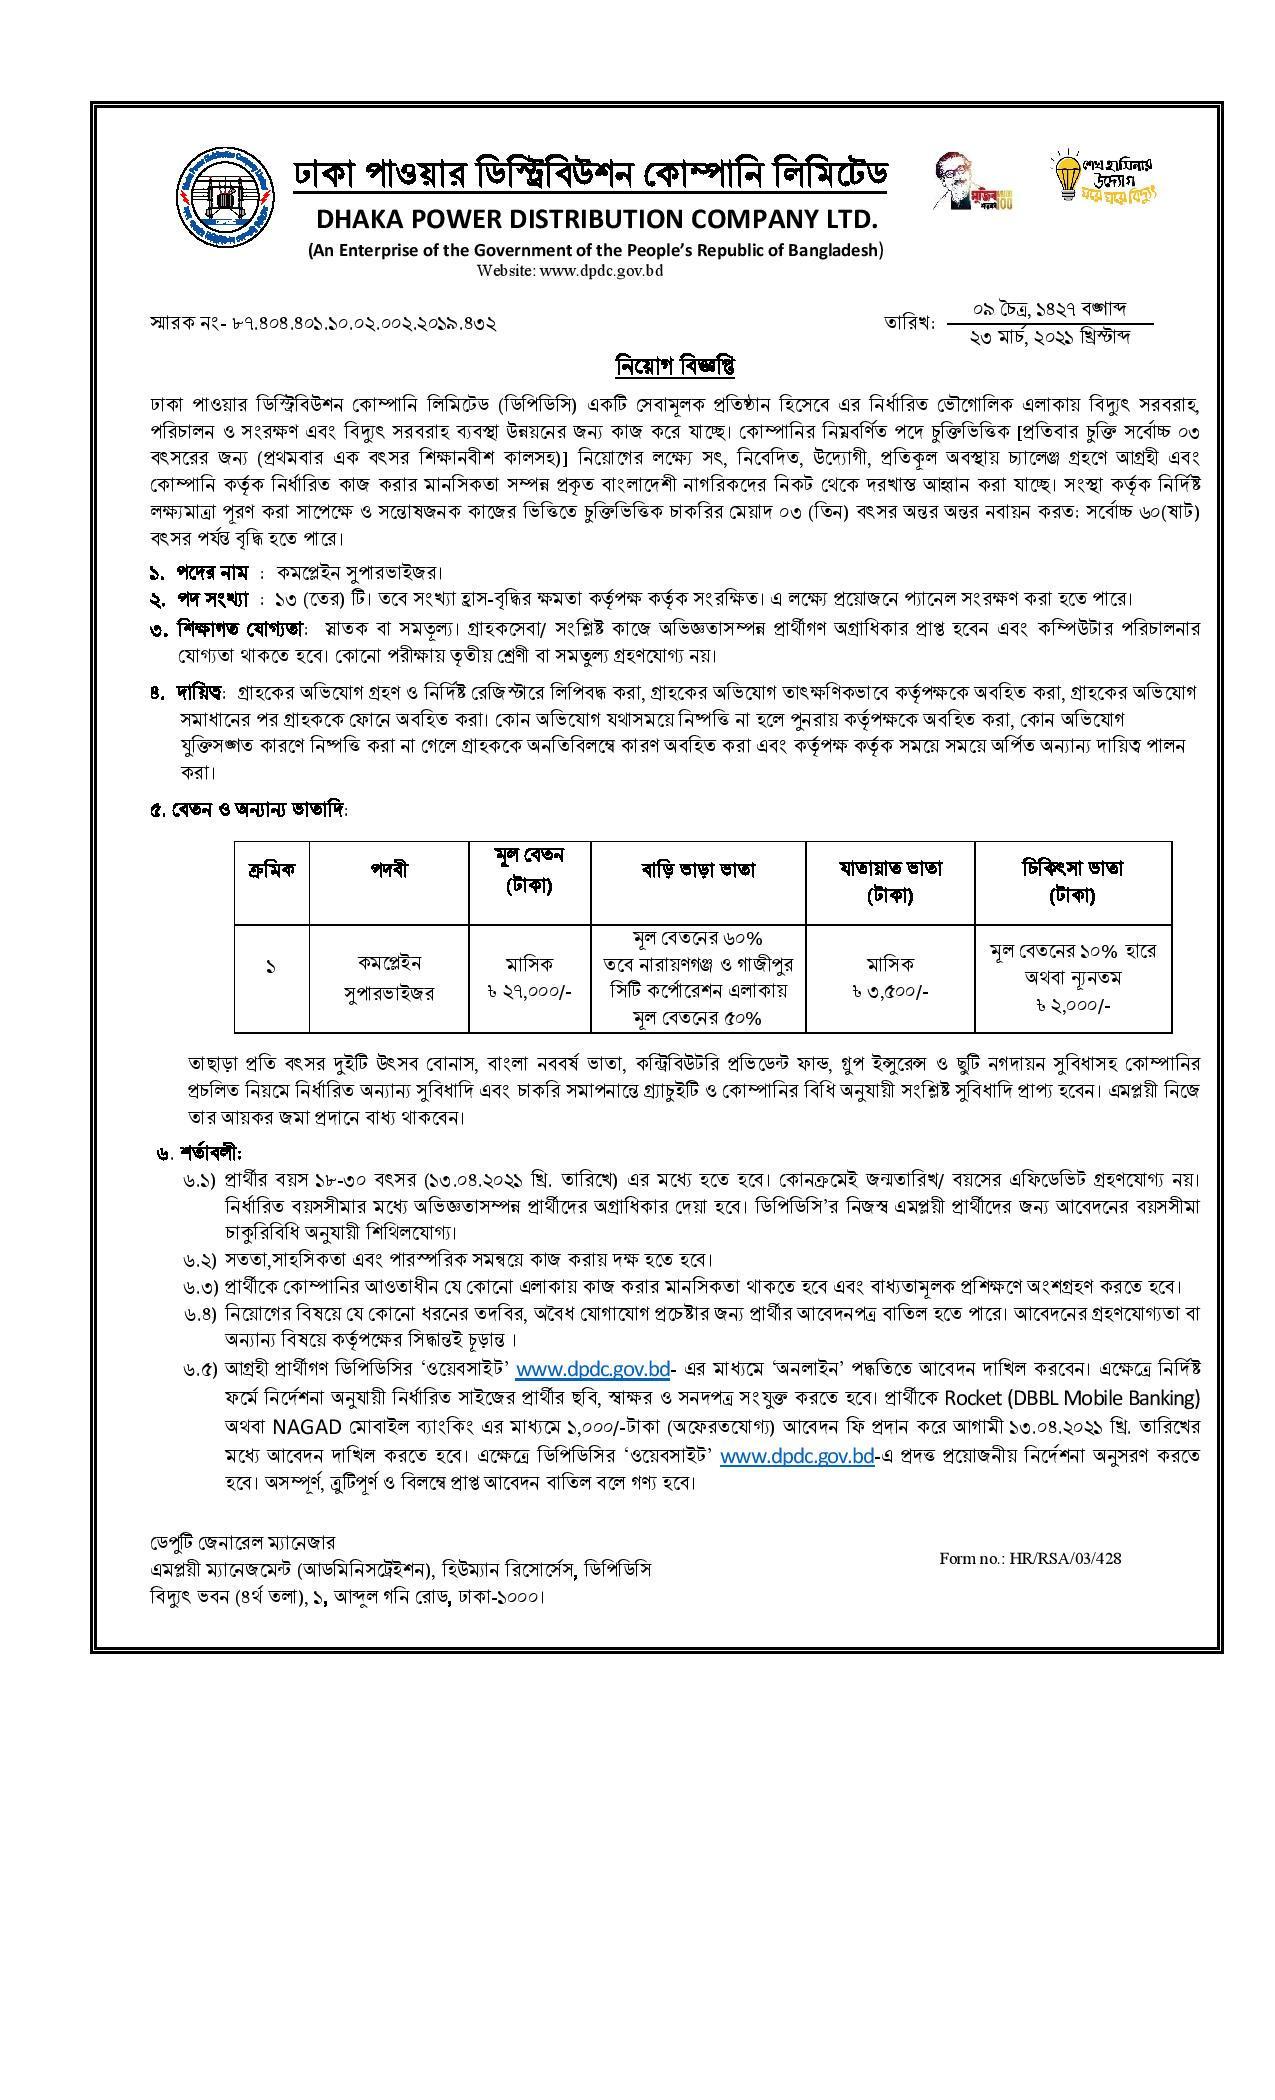 DHAKA POWER DISTRIBUTION COMPANY LIMITED JOB CIRCULAR 2021